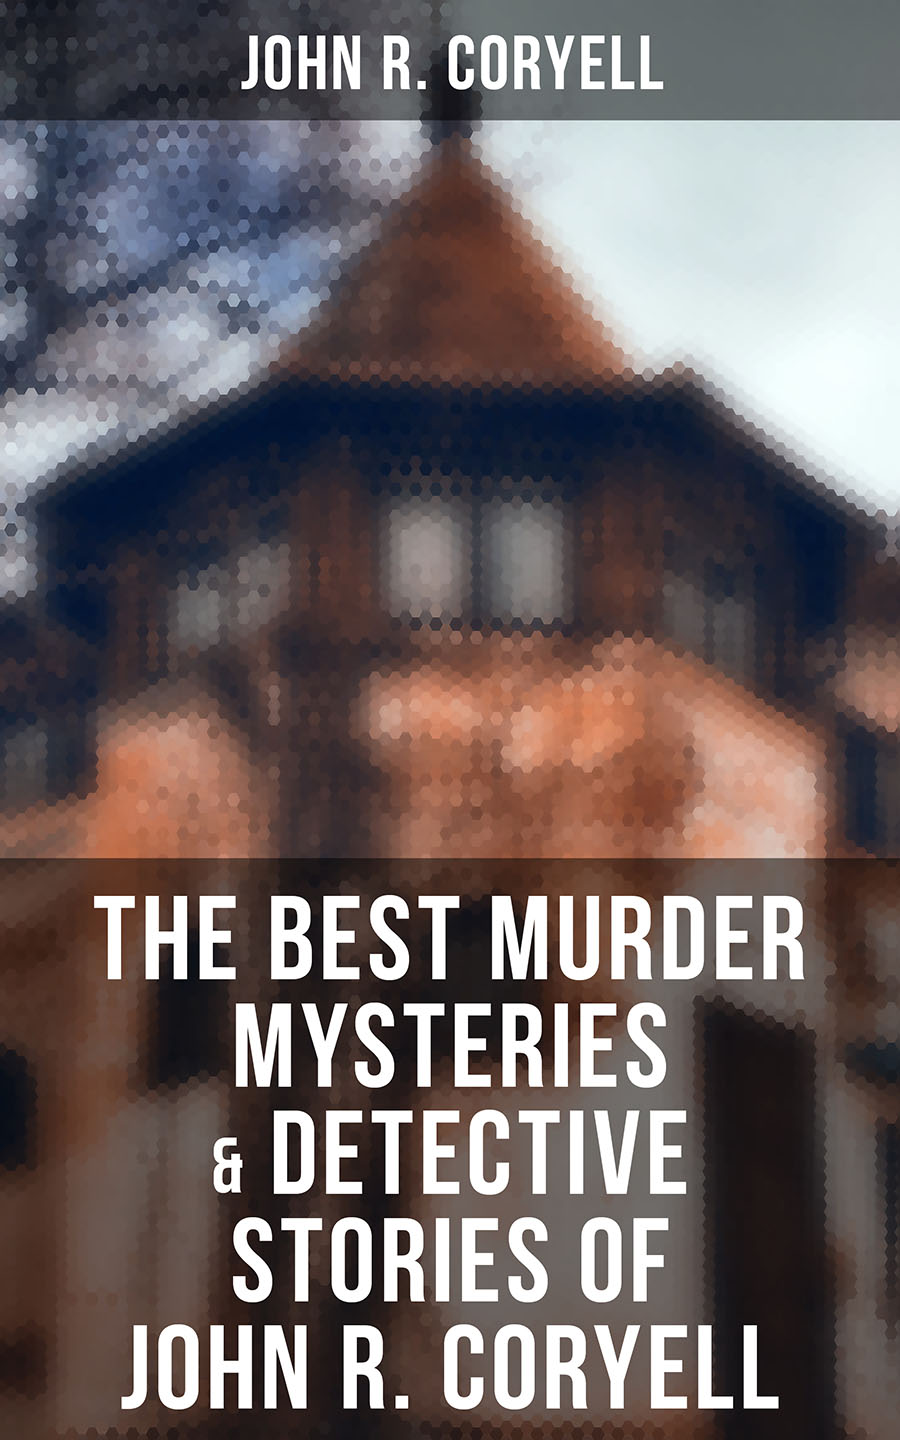 цена на John R. Coryell JOHN R. CORYELL Ultimate Collection: Murder Mysteries, Thrillers & Detective Stories (Including Complete Nick Carter Series)